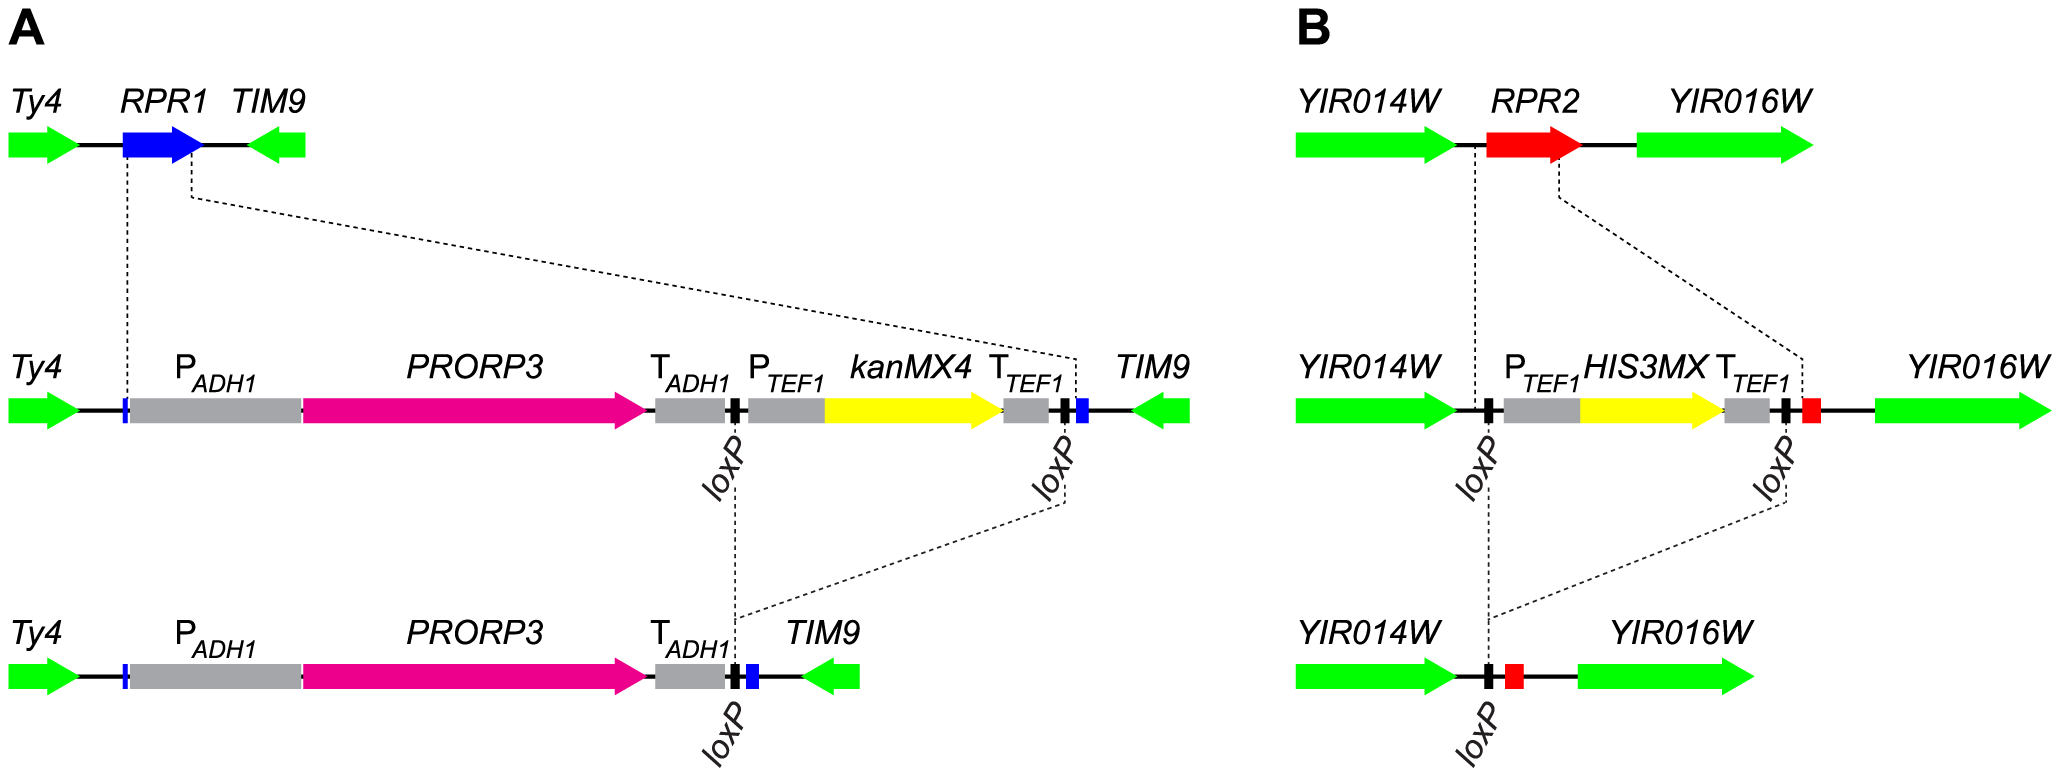 Gene replacement and deletion strategy: substitution of <i>RPR1</i> by <i>PRORP3</i> and deletion of <i>RPR2</i>.